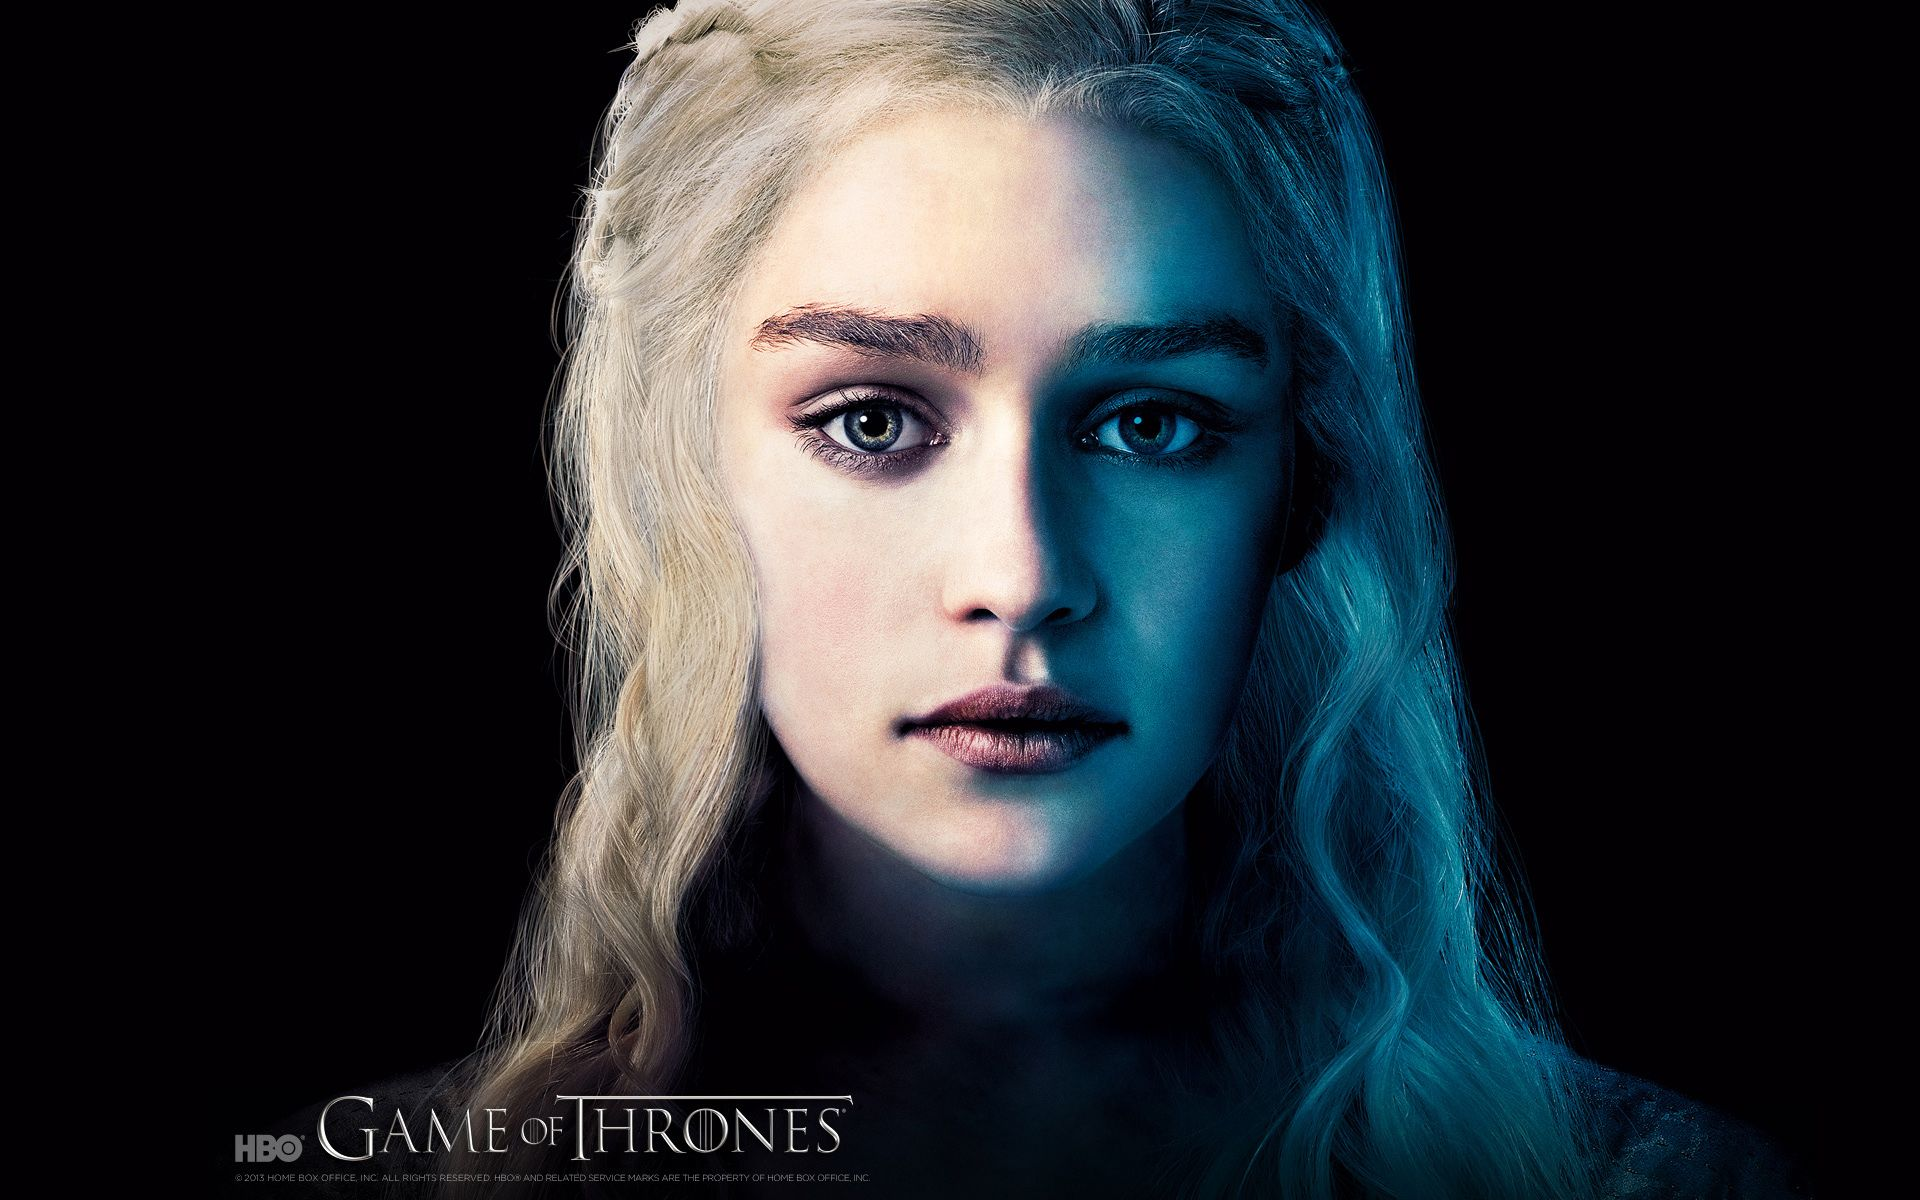 game of thrones season 3 Emilia Clarke Game of Thrones Season 3 1920x1200